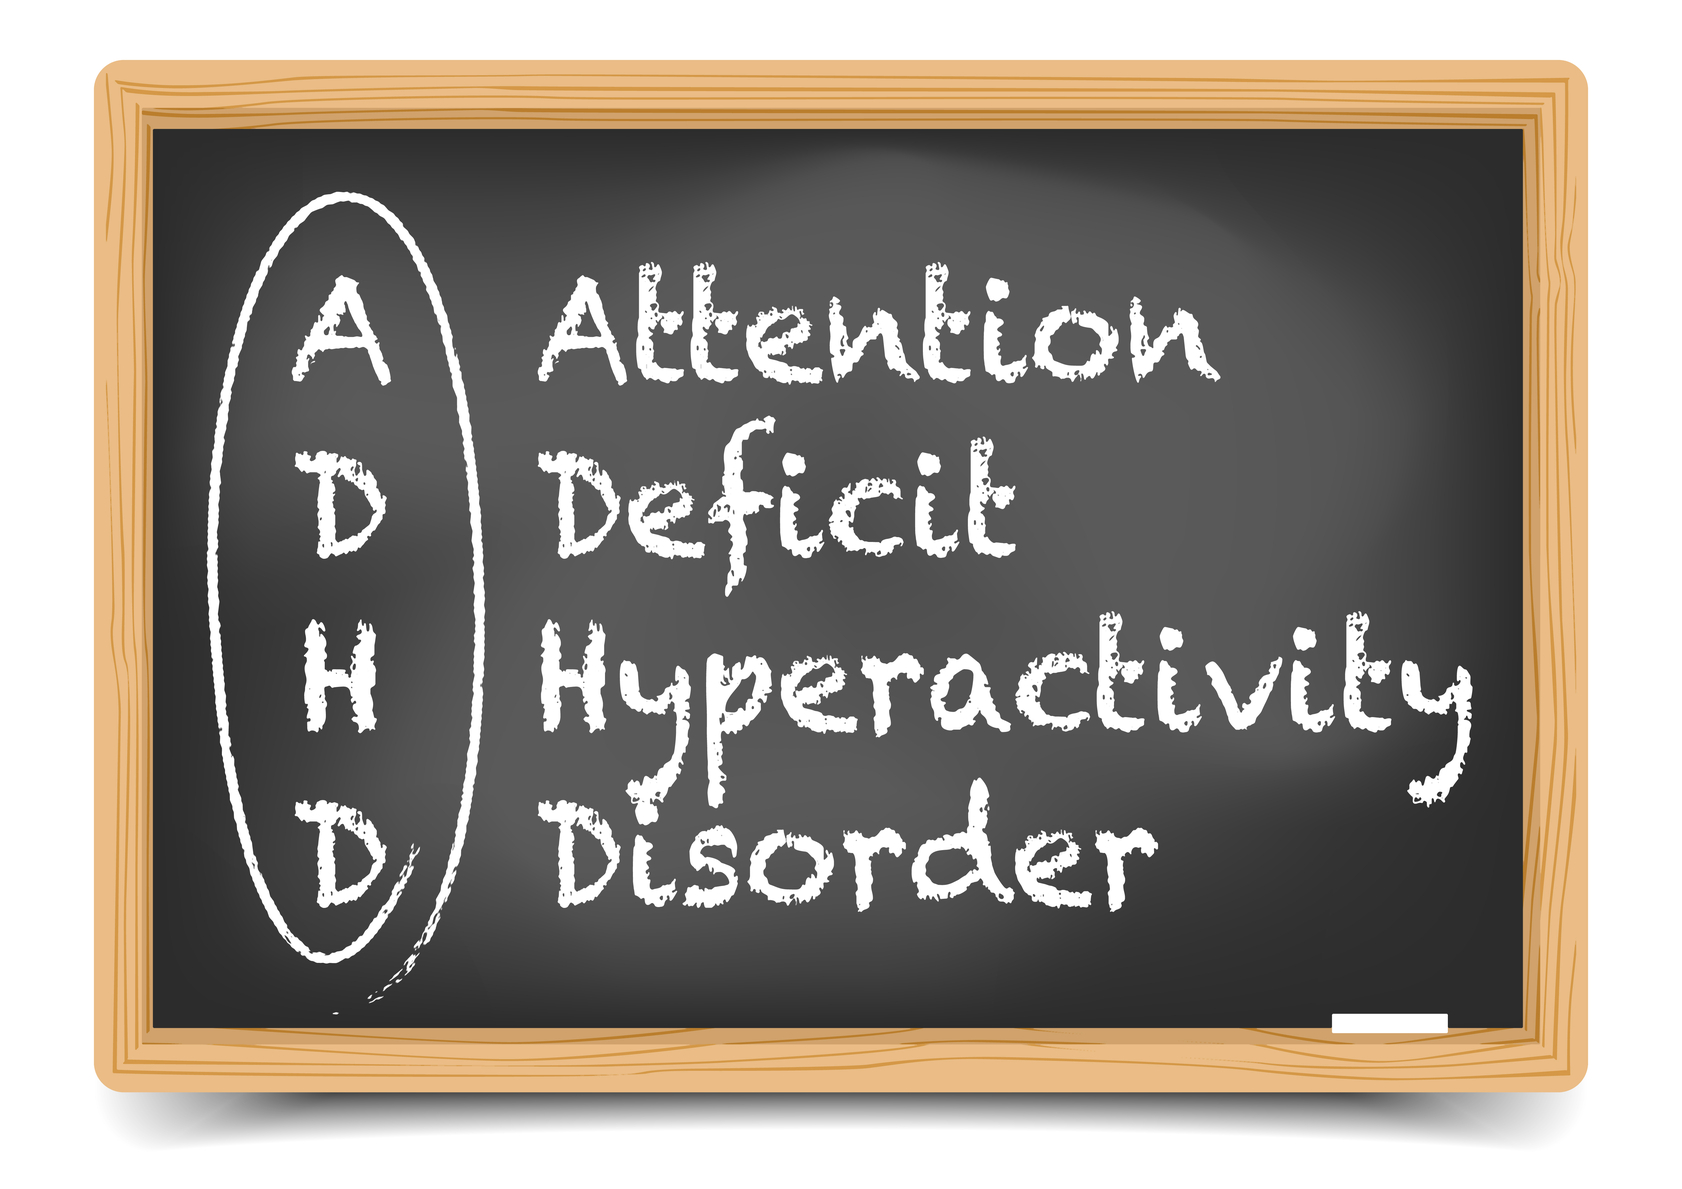 overdiagnosis of adhd in children In the adhd explosion, two uc berkeley professors link the rise in adhd diagnoses to school-based performance measures read journalist david tuller's interview with one of the authors.